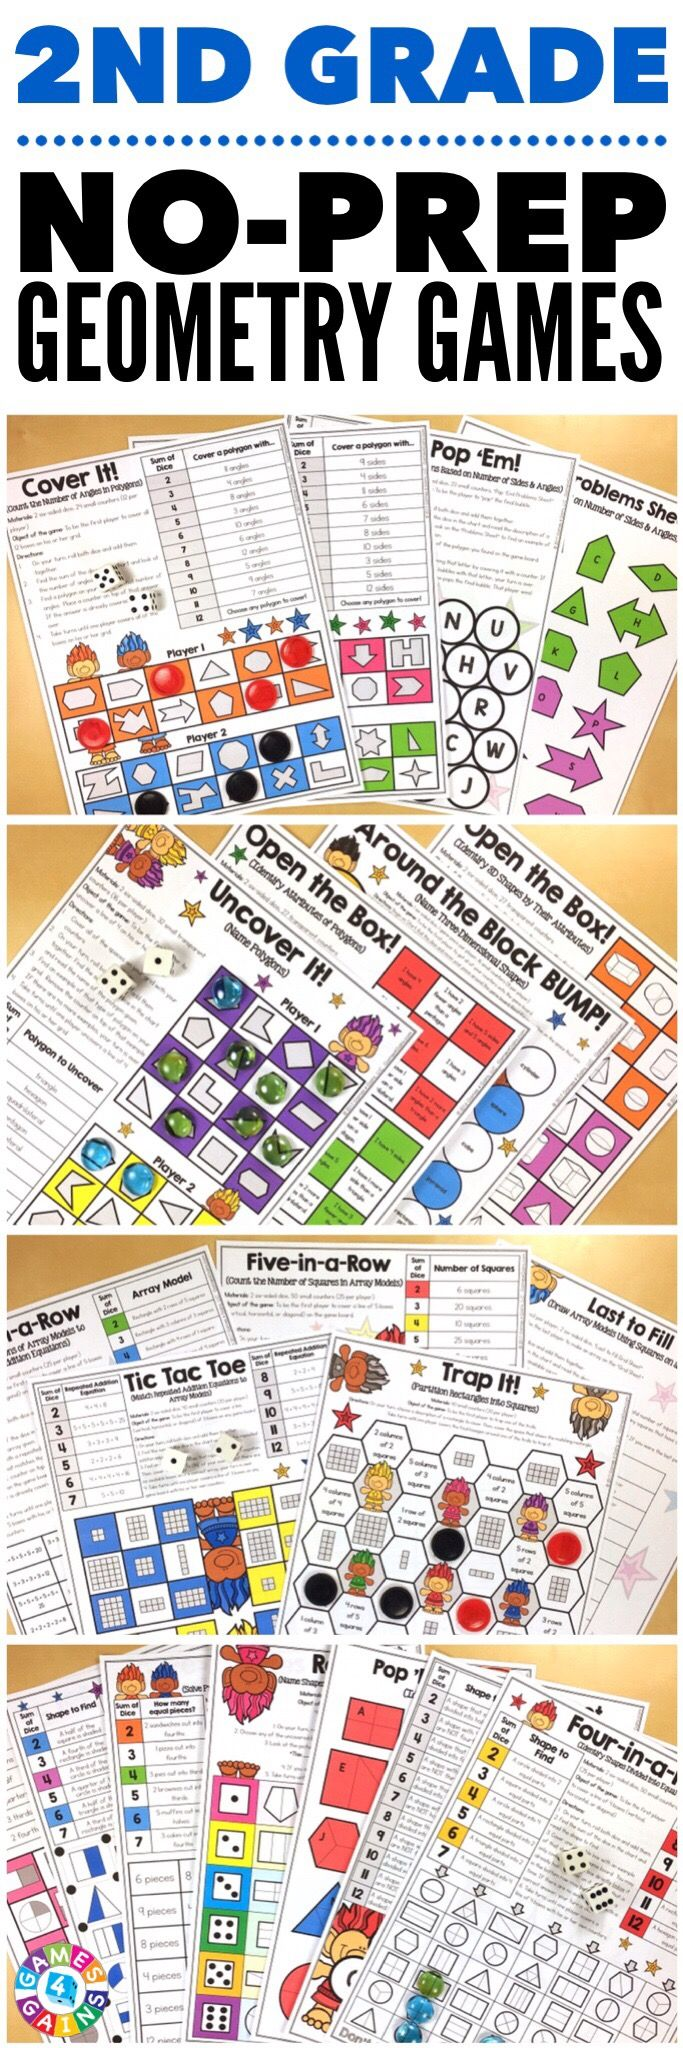 """""""Kids are LOVING these games during rotation time to reinforce standards."""" This 2nd Grade Geometry Games Pack includes 18 differentiated games for practicing identifying the attributes of polygons and three-dimensional shapes, naming polygons and three-dimensional shapes, partitioning rectangles into squares, partitioning shapes into halves, thirds, and fourths, and more! These games support the 2nd grade CCSS geometry standards {2.G.1, 2.G.2, 2.G.3, 2.OA.4}."""